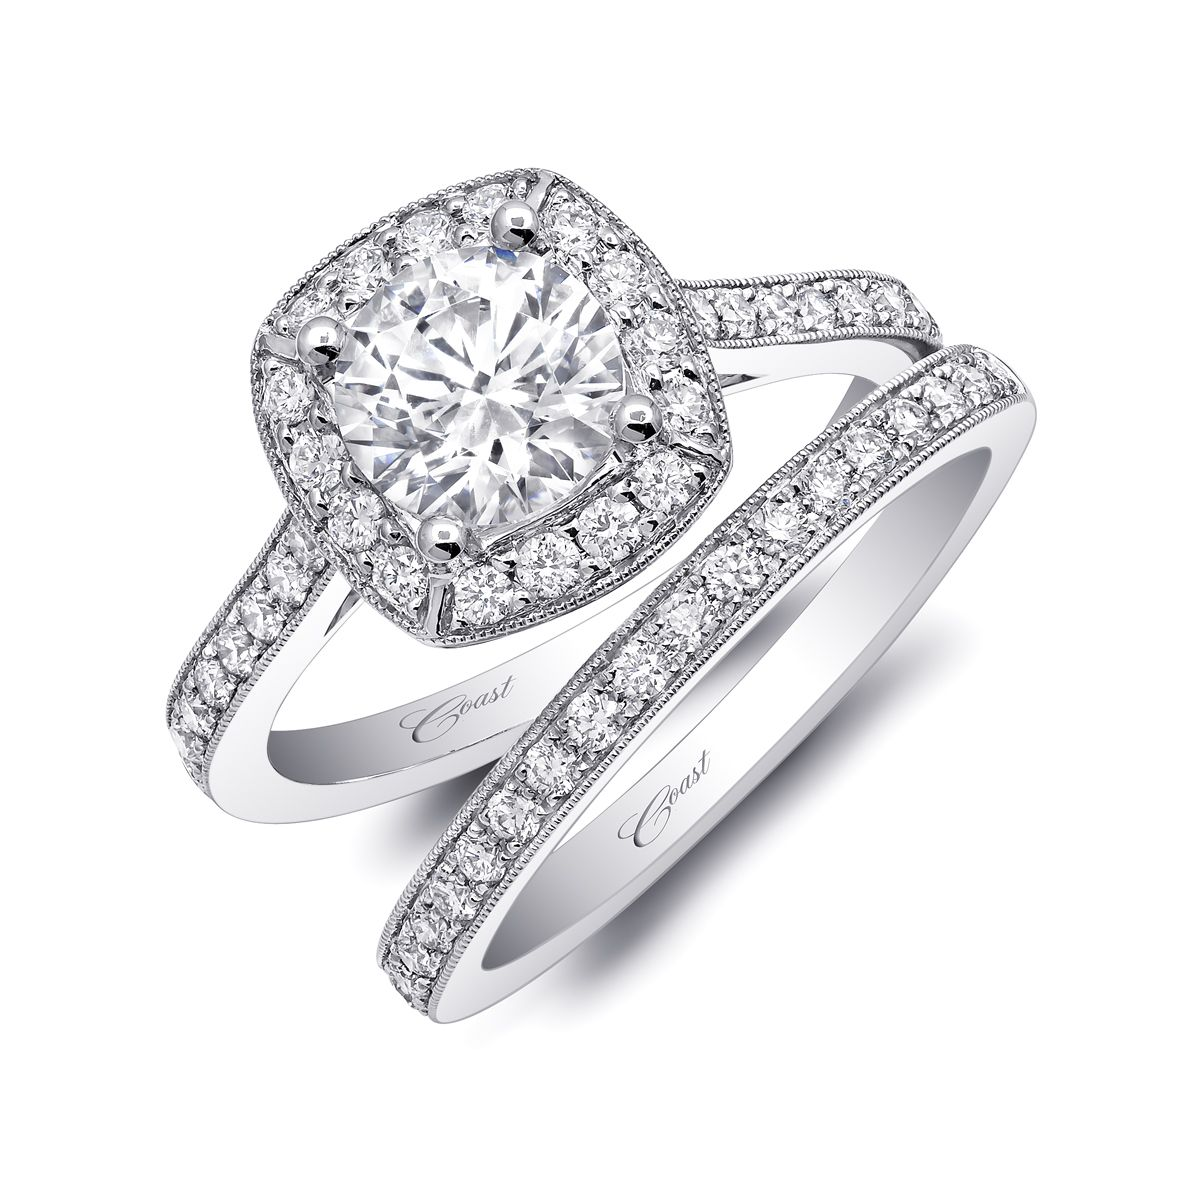 14k Milgrain Engagement Ring With Pave' Band.